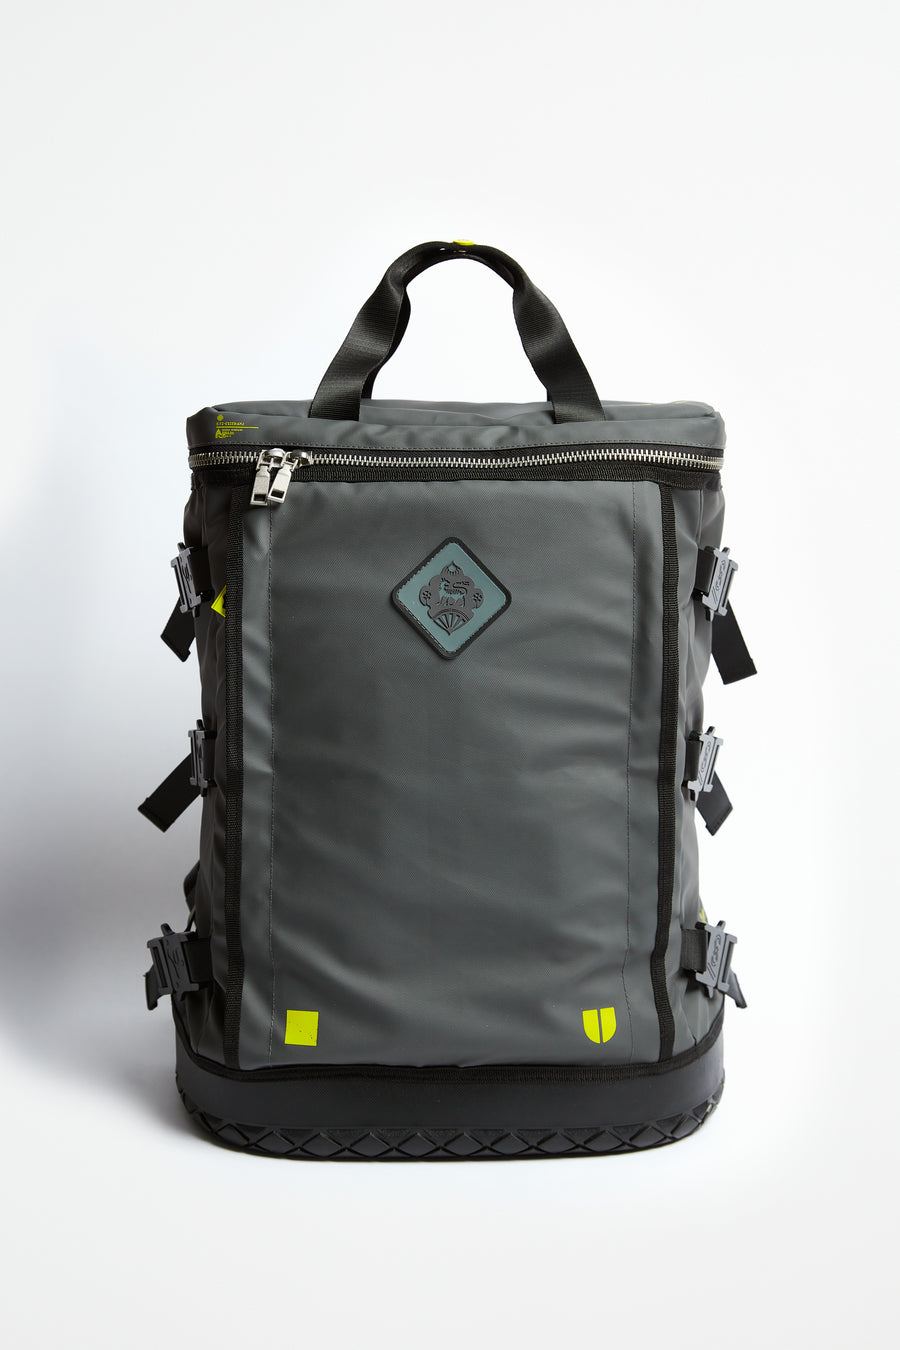 Destiny Europa Industrial Backpack